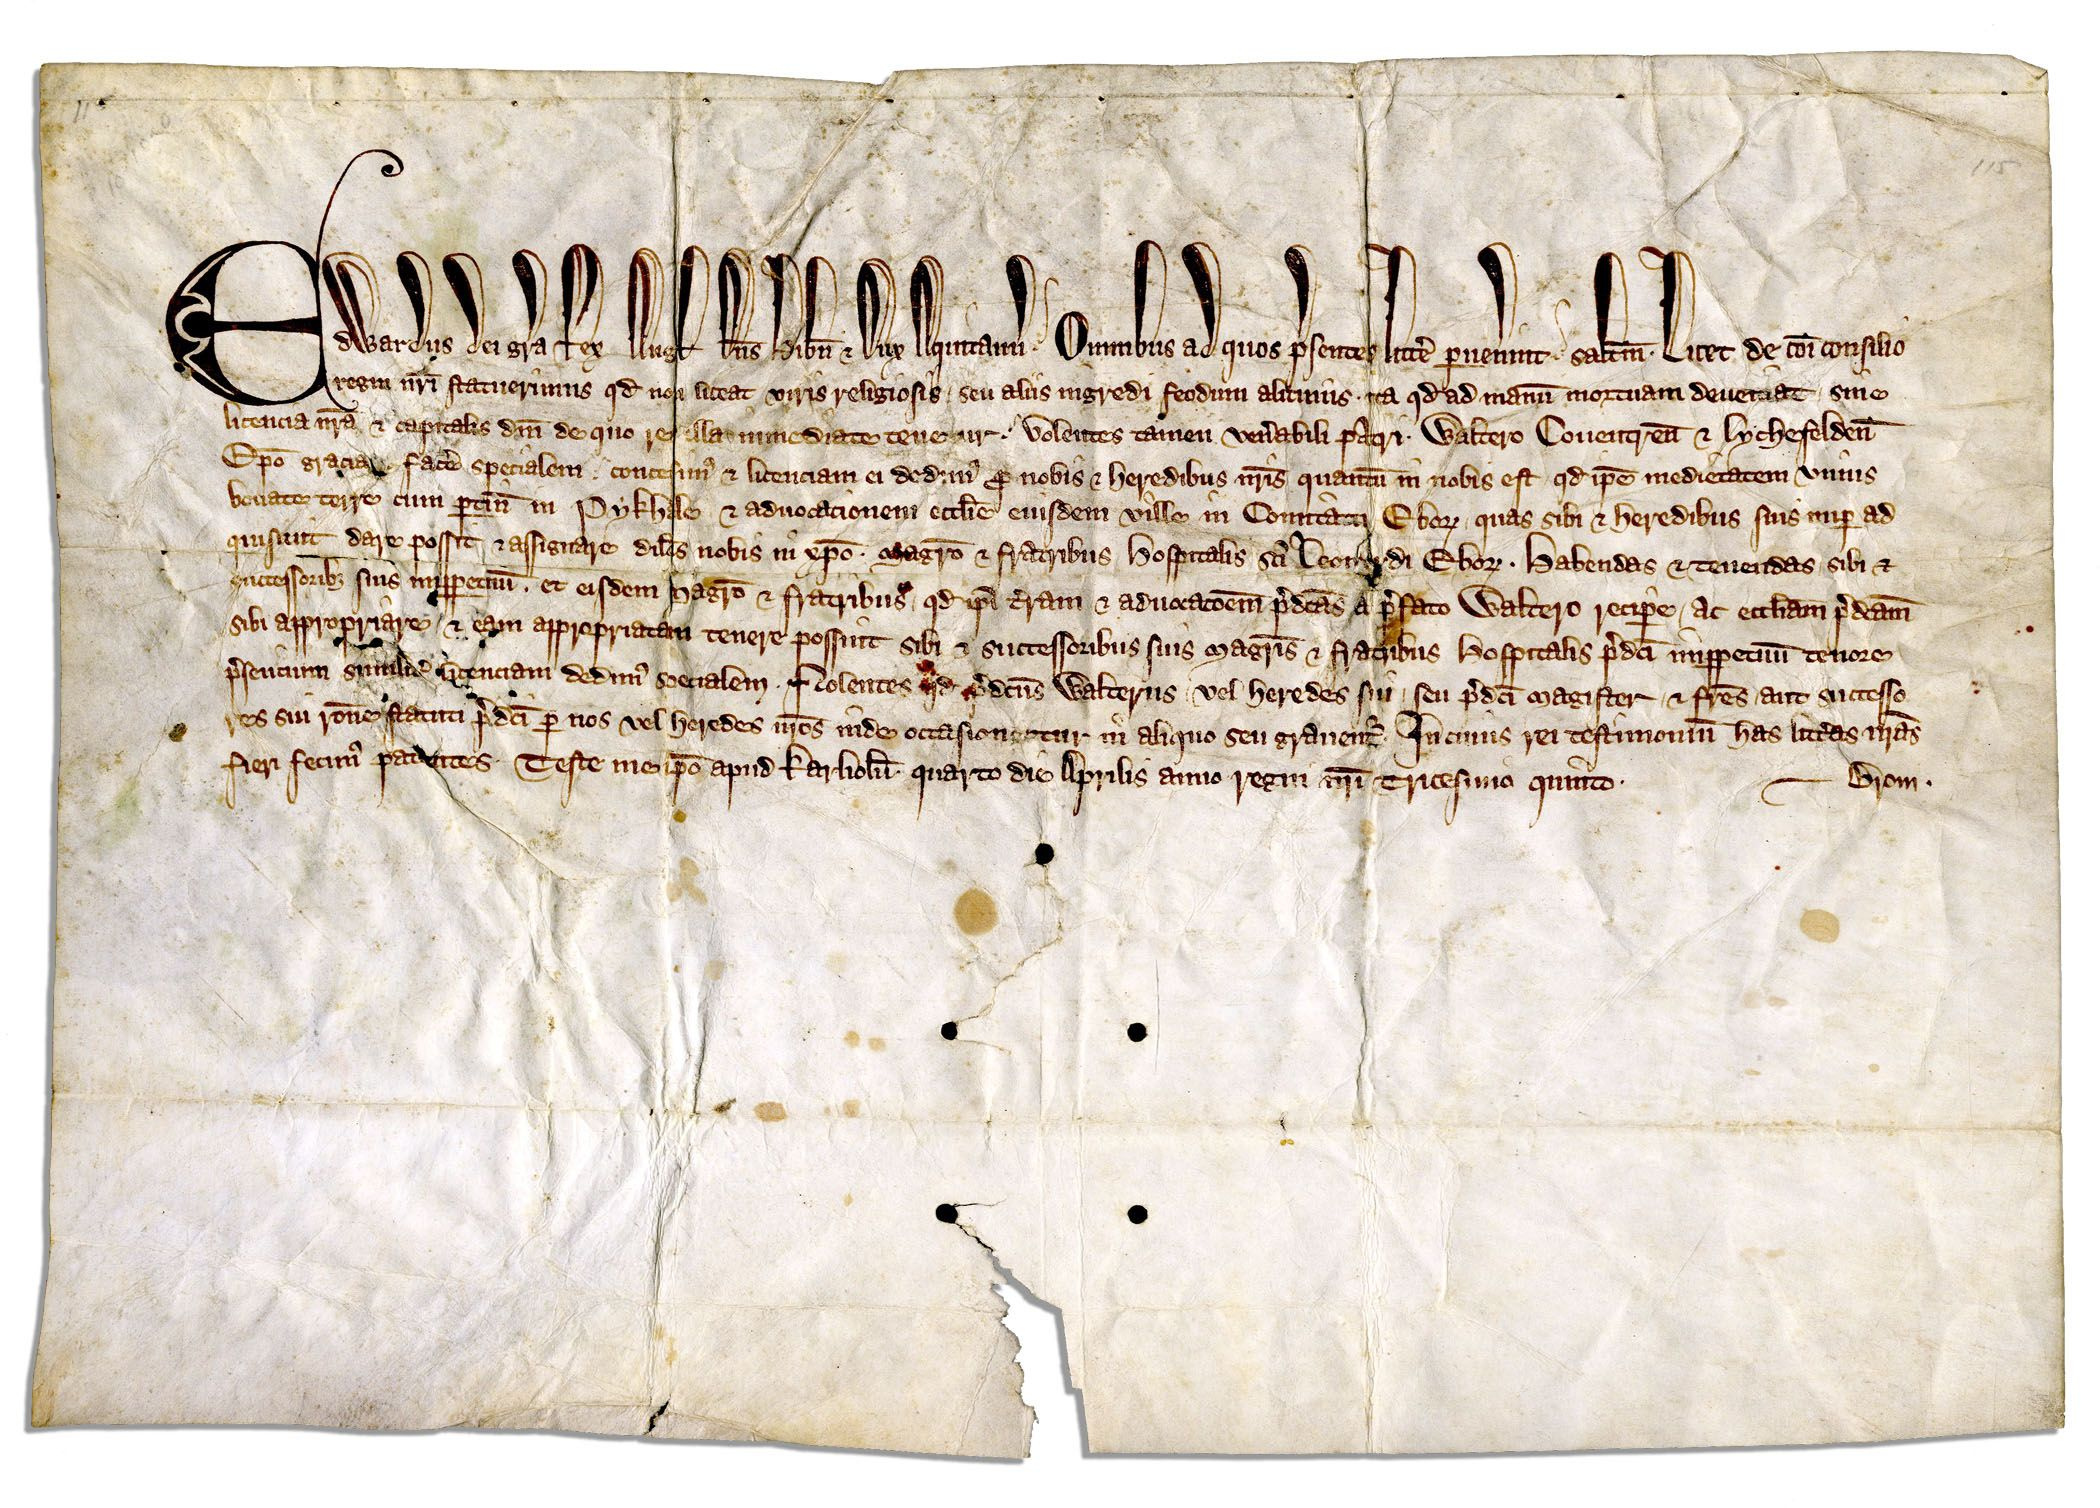 King Edward Memorabilia 1307 Document From the Reign of Edward I -- One of the Few Extant Documents From the King Who Imposed a 400 Year Ban on Jews in England